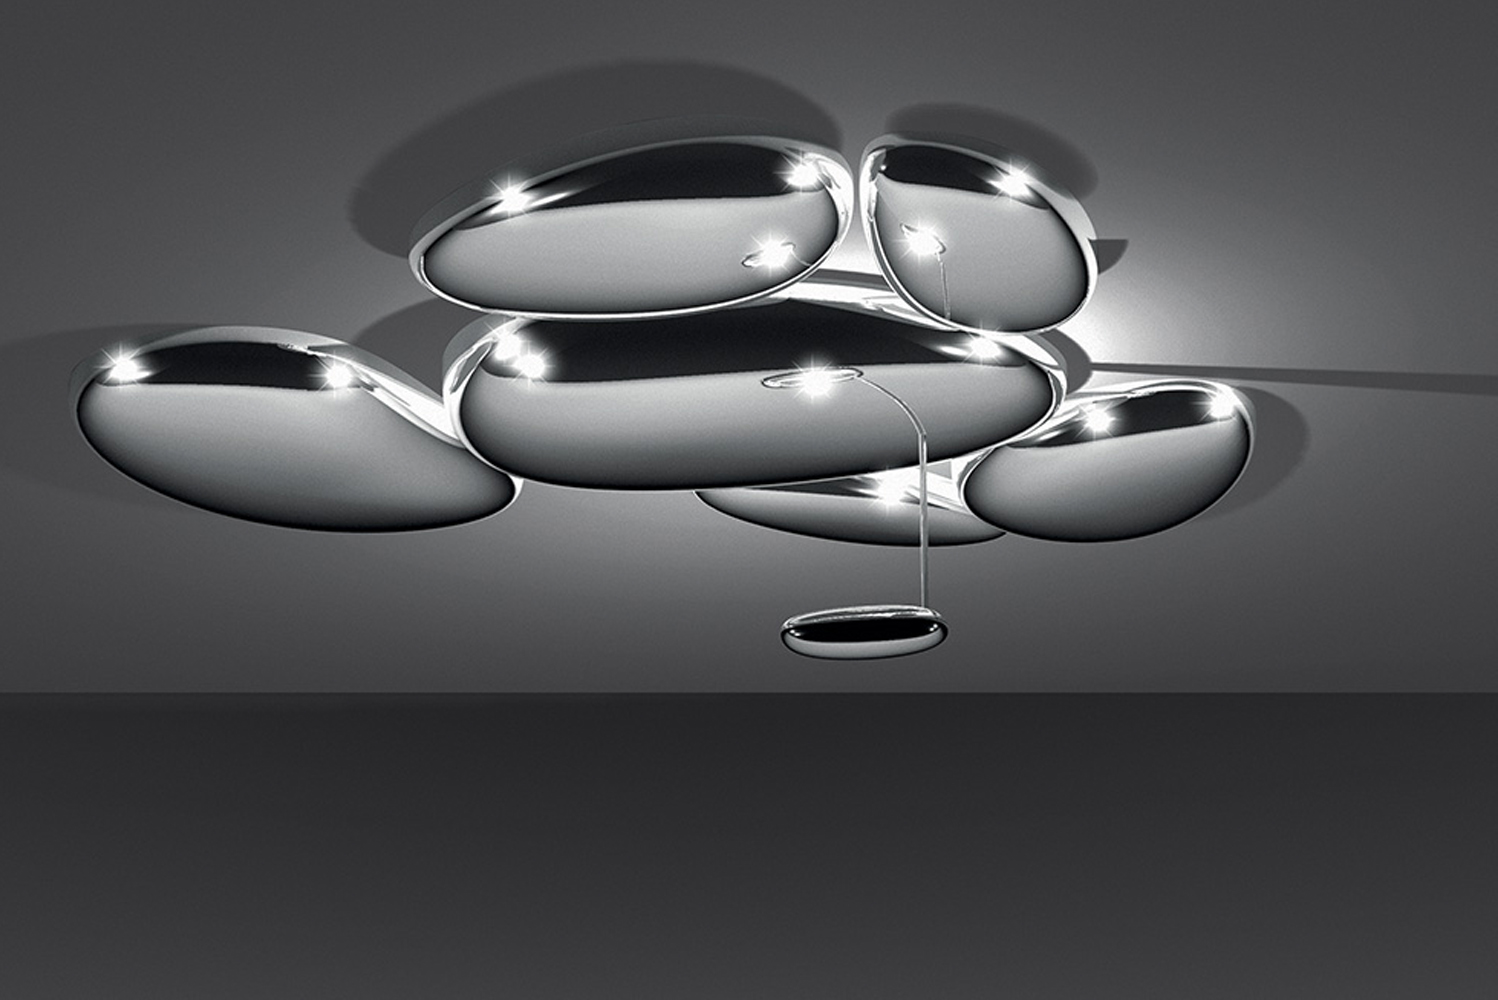 With Skydro, a series of pebbles forms a bright sky reflecting the light that bounces on its biomorphic surfaces.